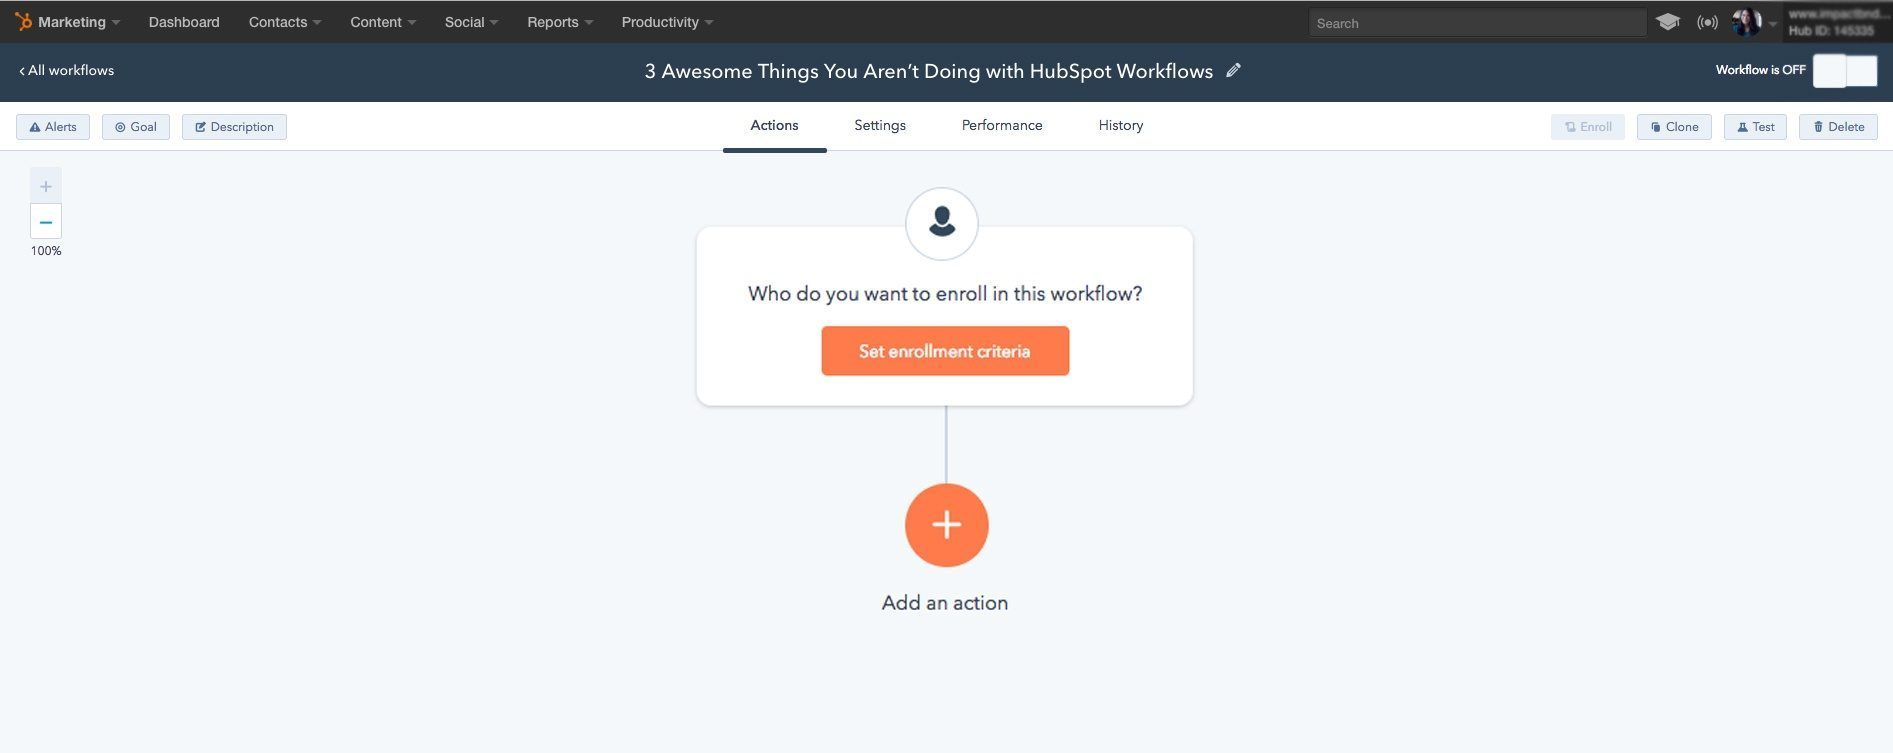 hubspot-workflows-tips-8741374-2070847-5040222